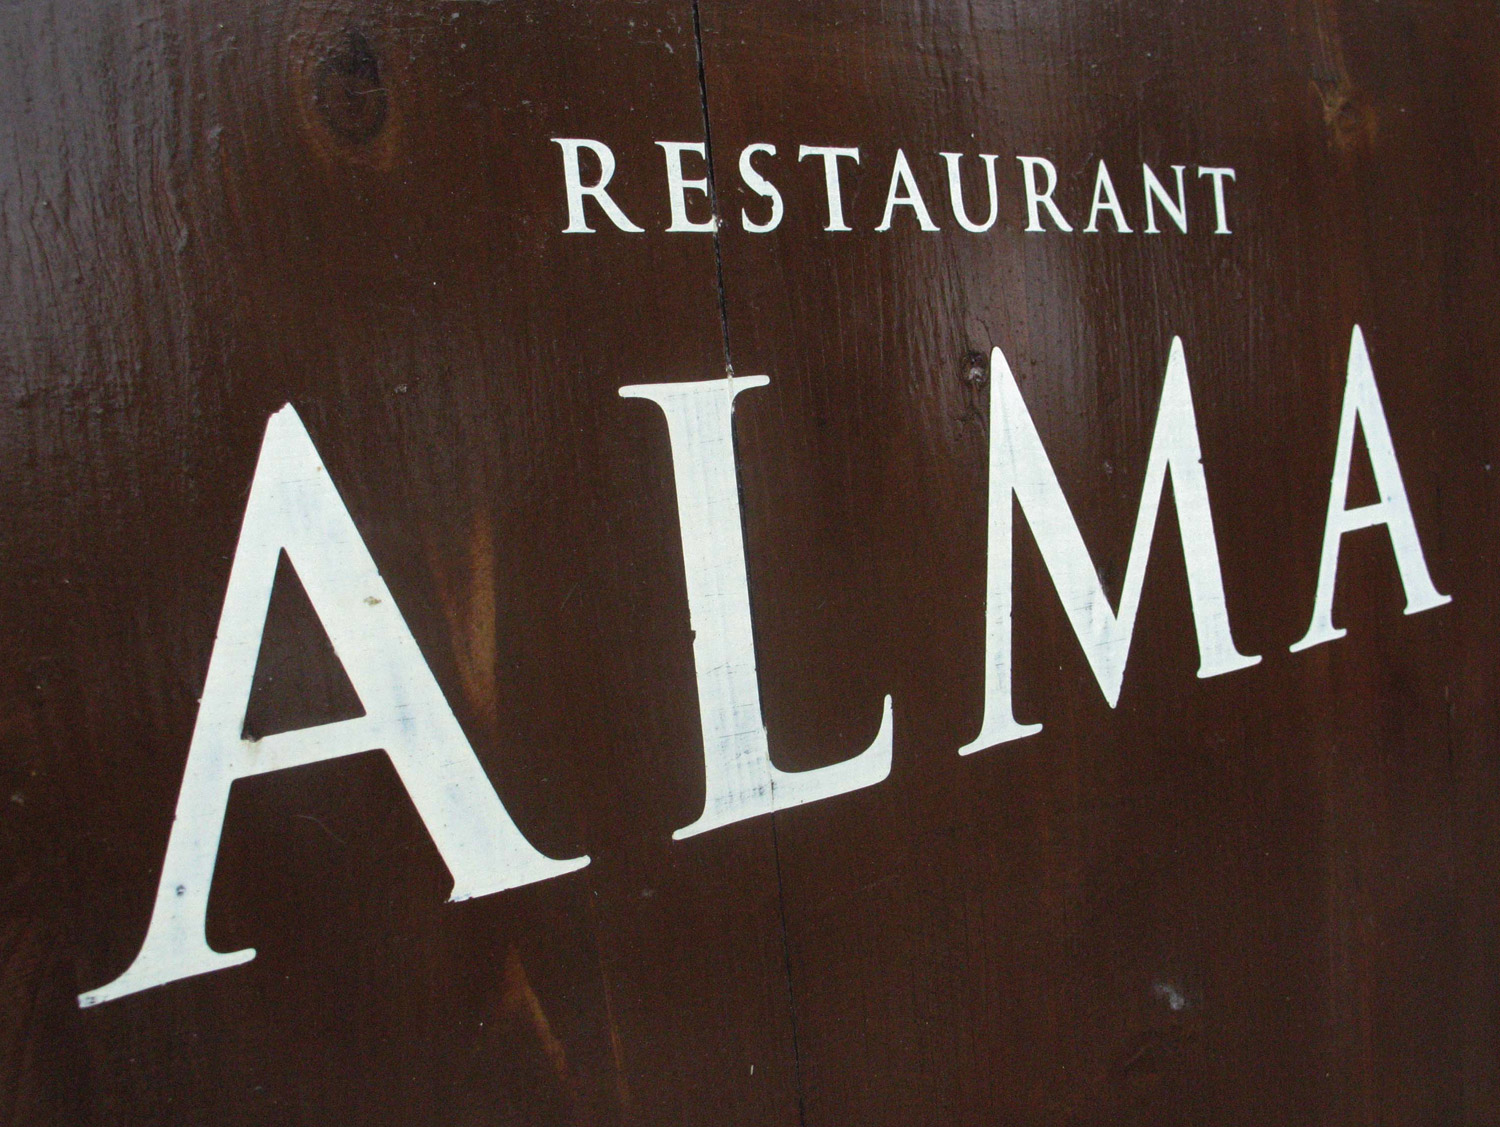 Restaurant-Alma-Sign-01.jpg